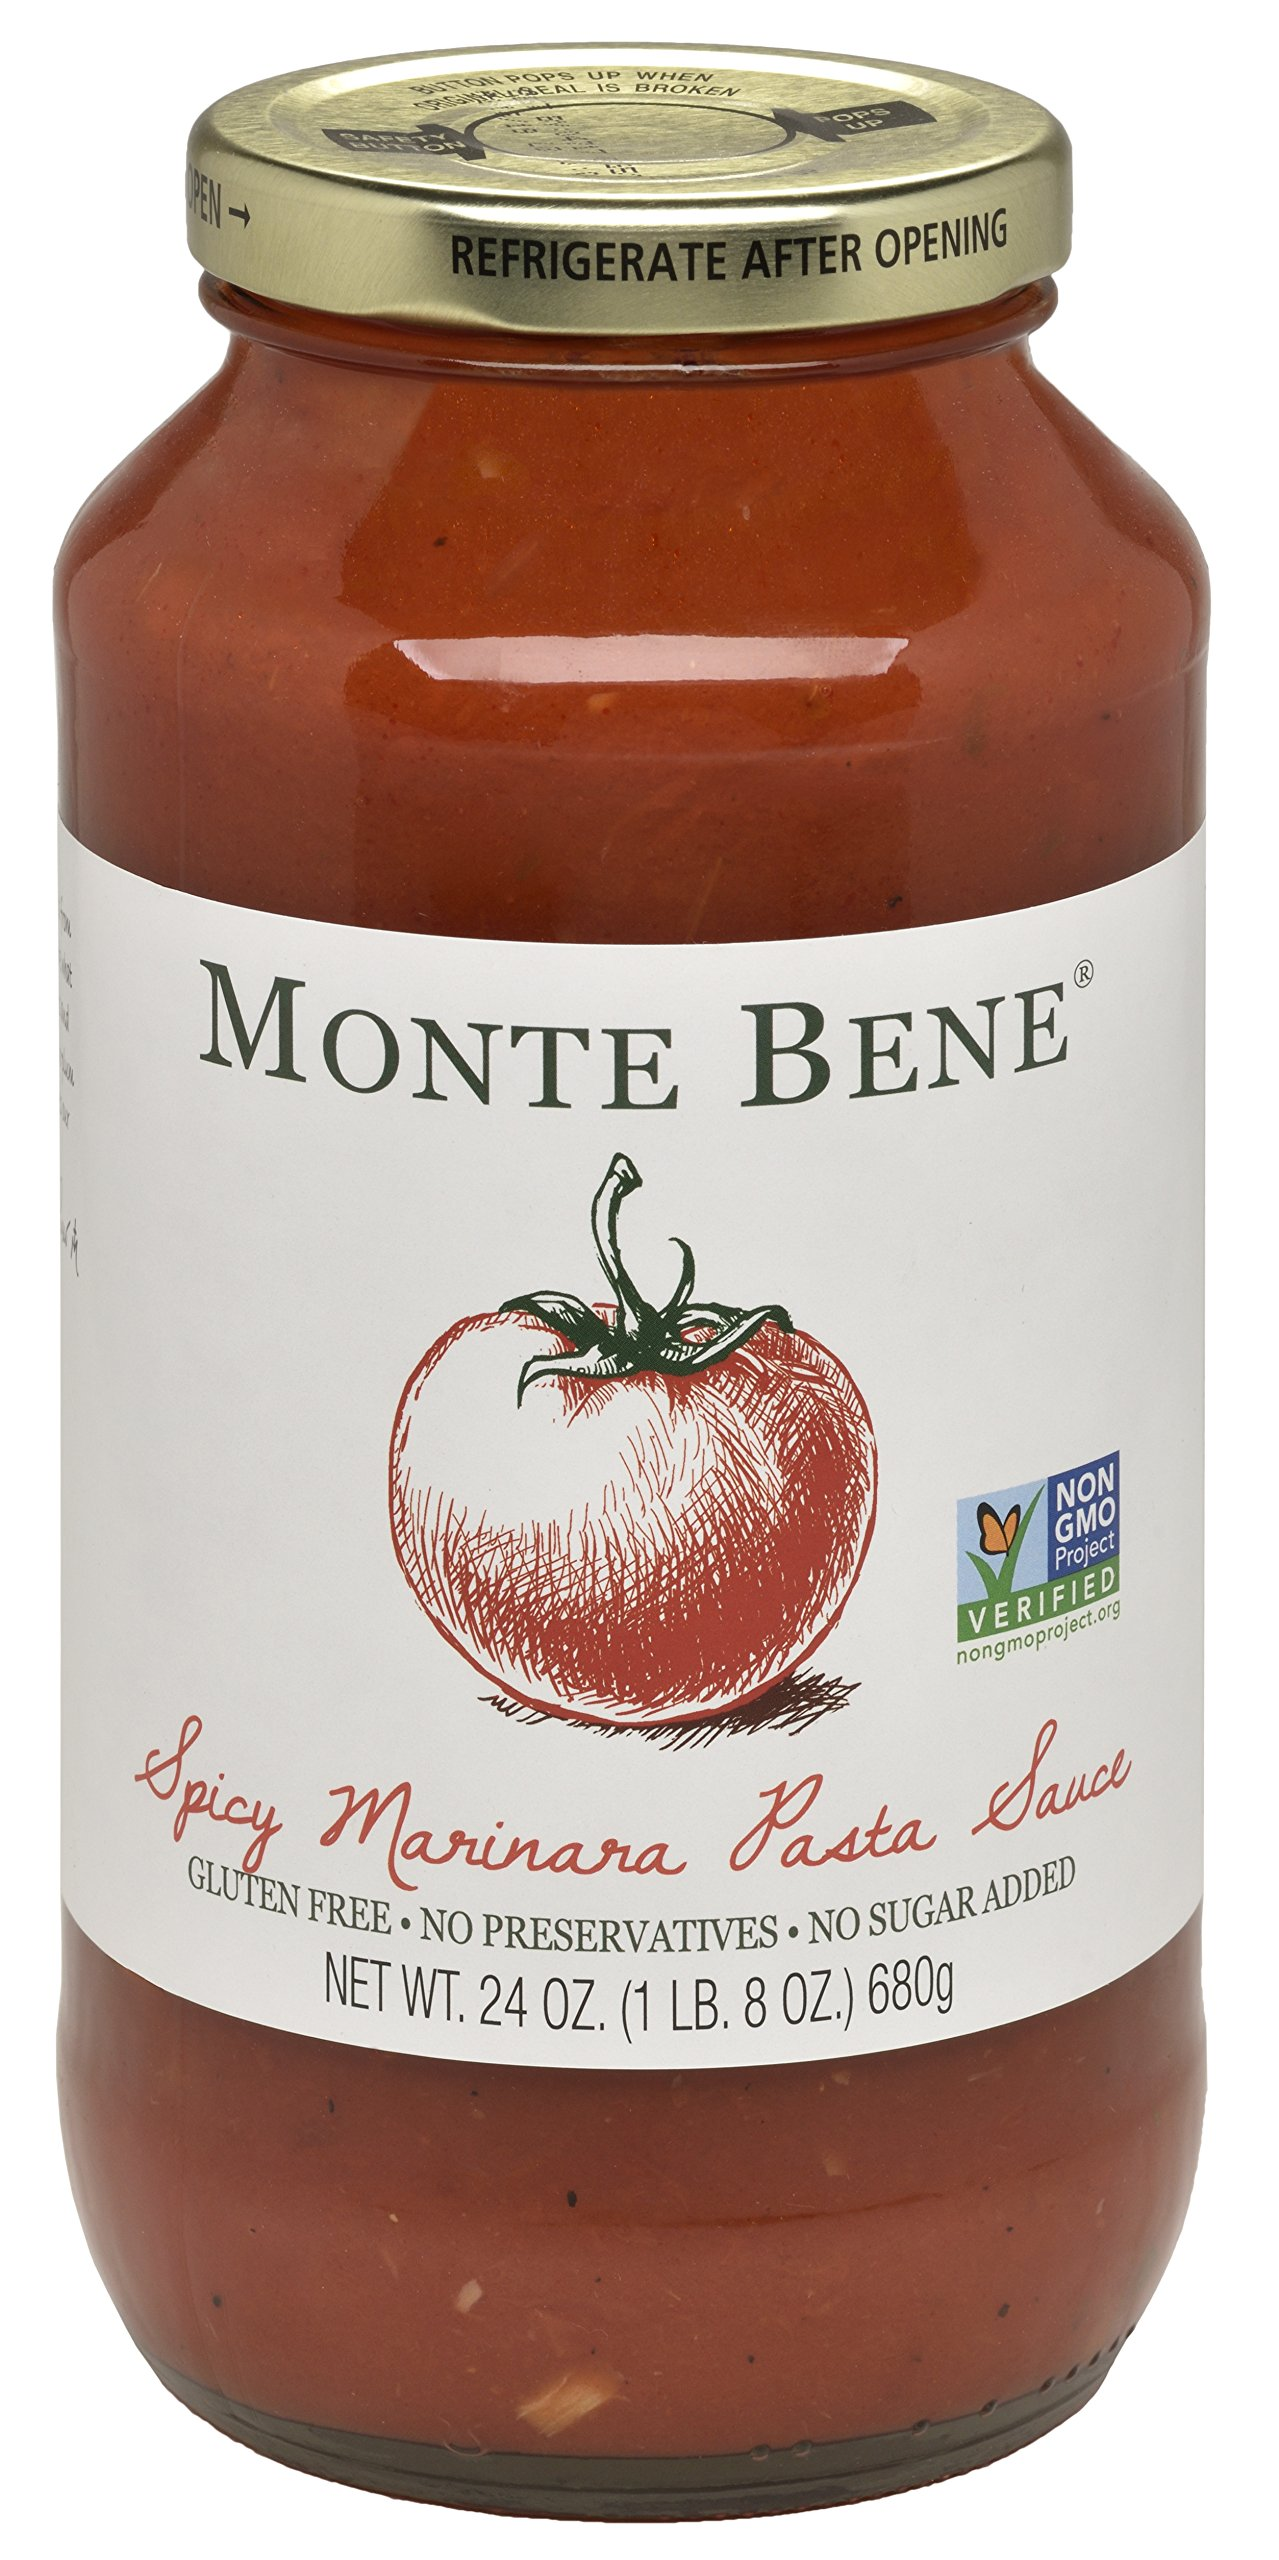 Monte Bene - Spicy Marinara Pasta Sauce - 24oz (Pack of 6) - Non GMO, Whole 30 Approved, Gluten Free by Monte Bene